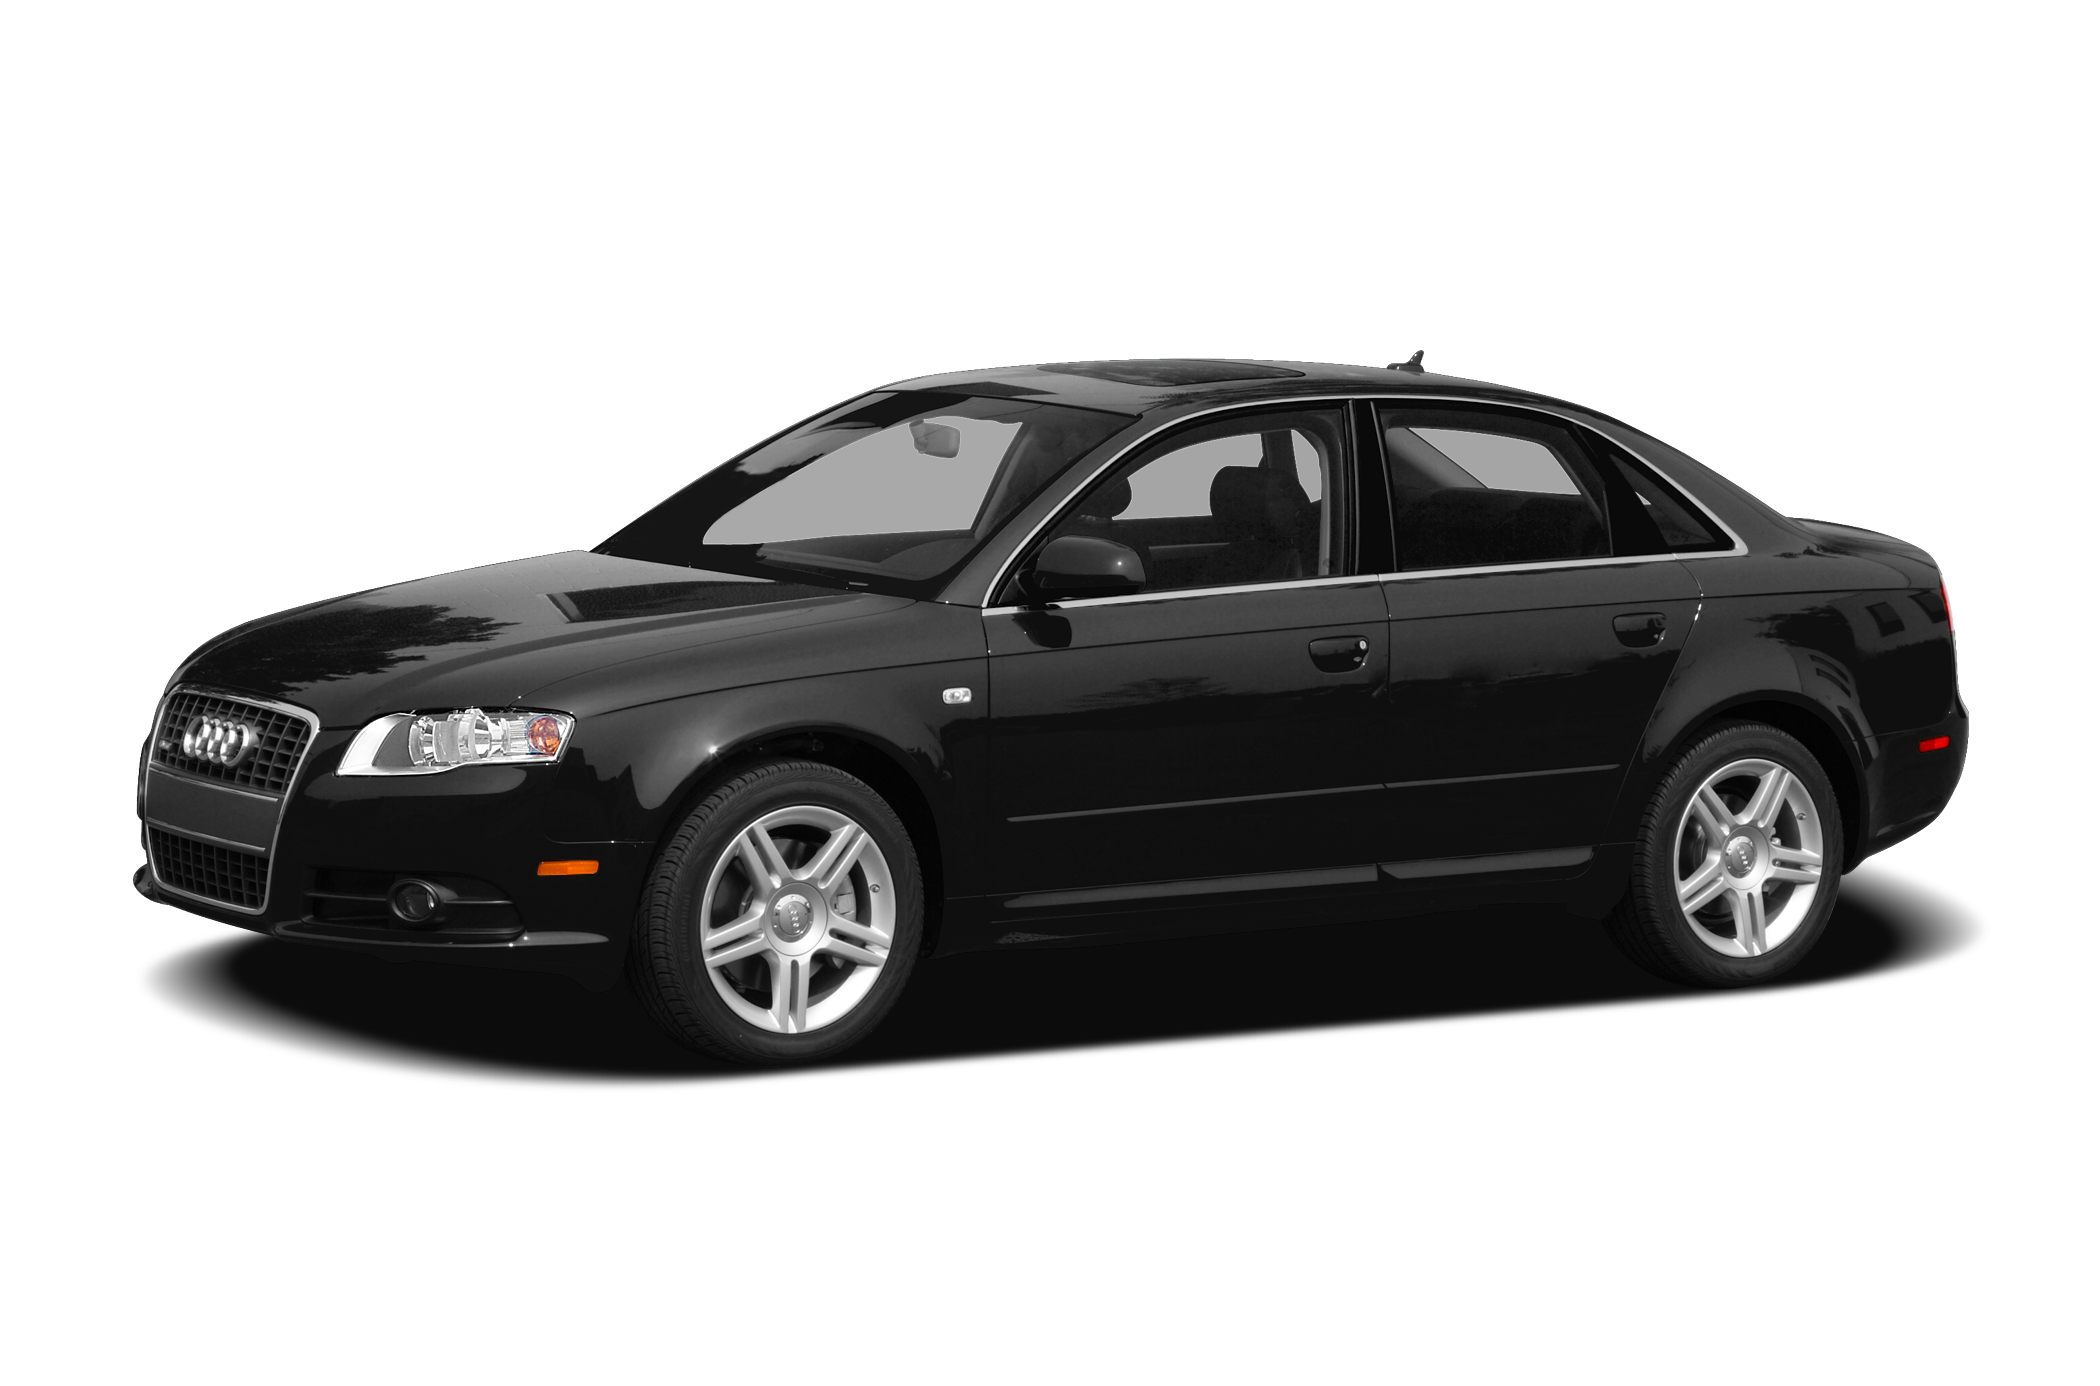 2008 Audi A4 2.0T Quattro Convertible for sale in Cockeysville for $16,990 with 63,569 miles.